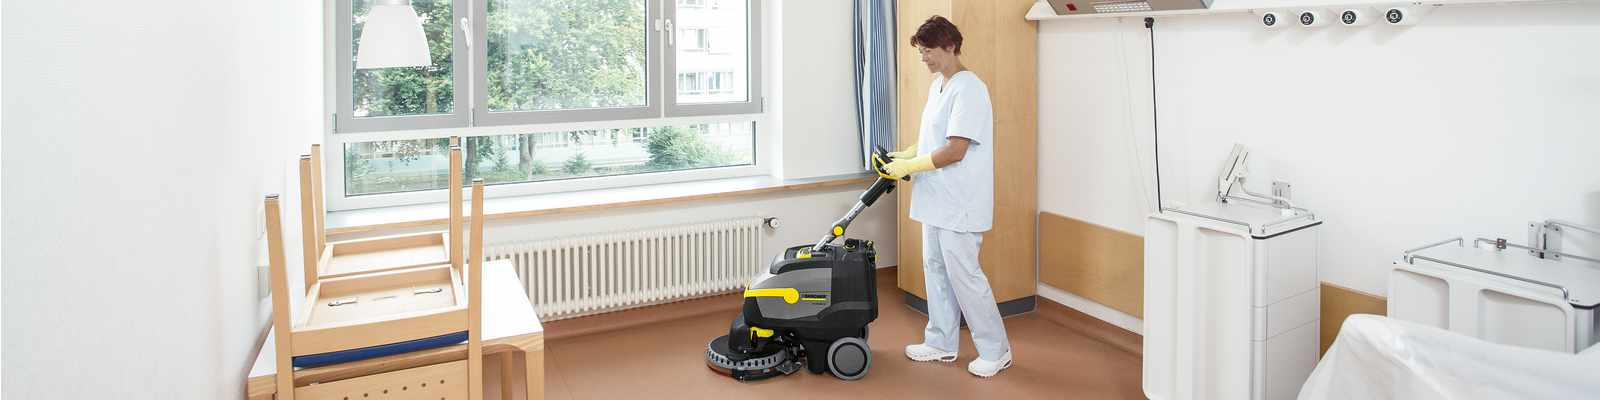 Scrubber dryer cleaning a hospital floor